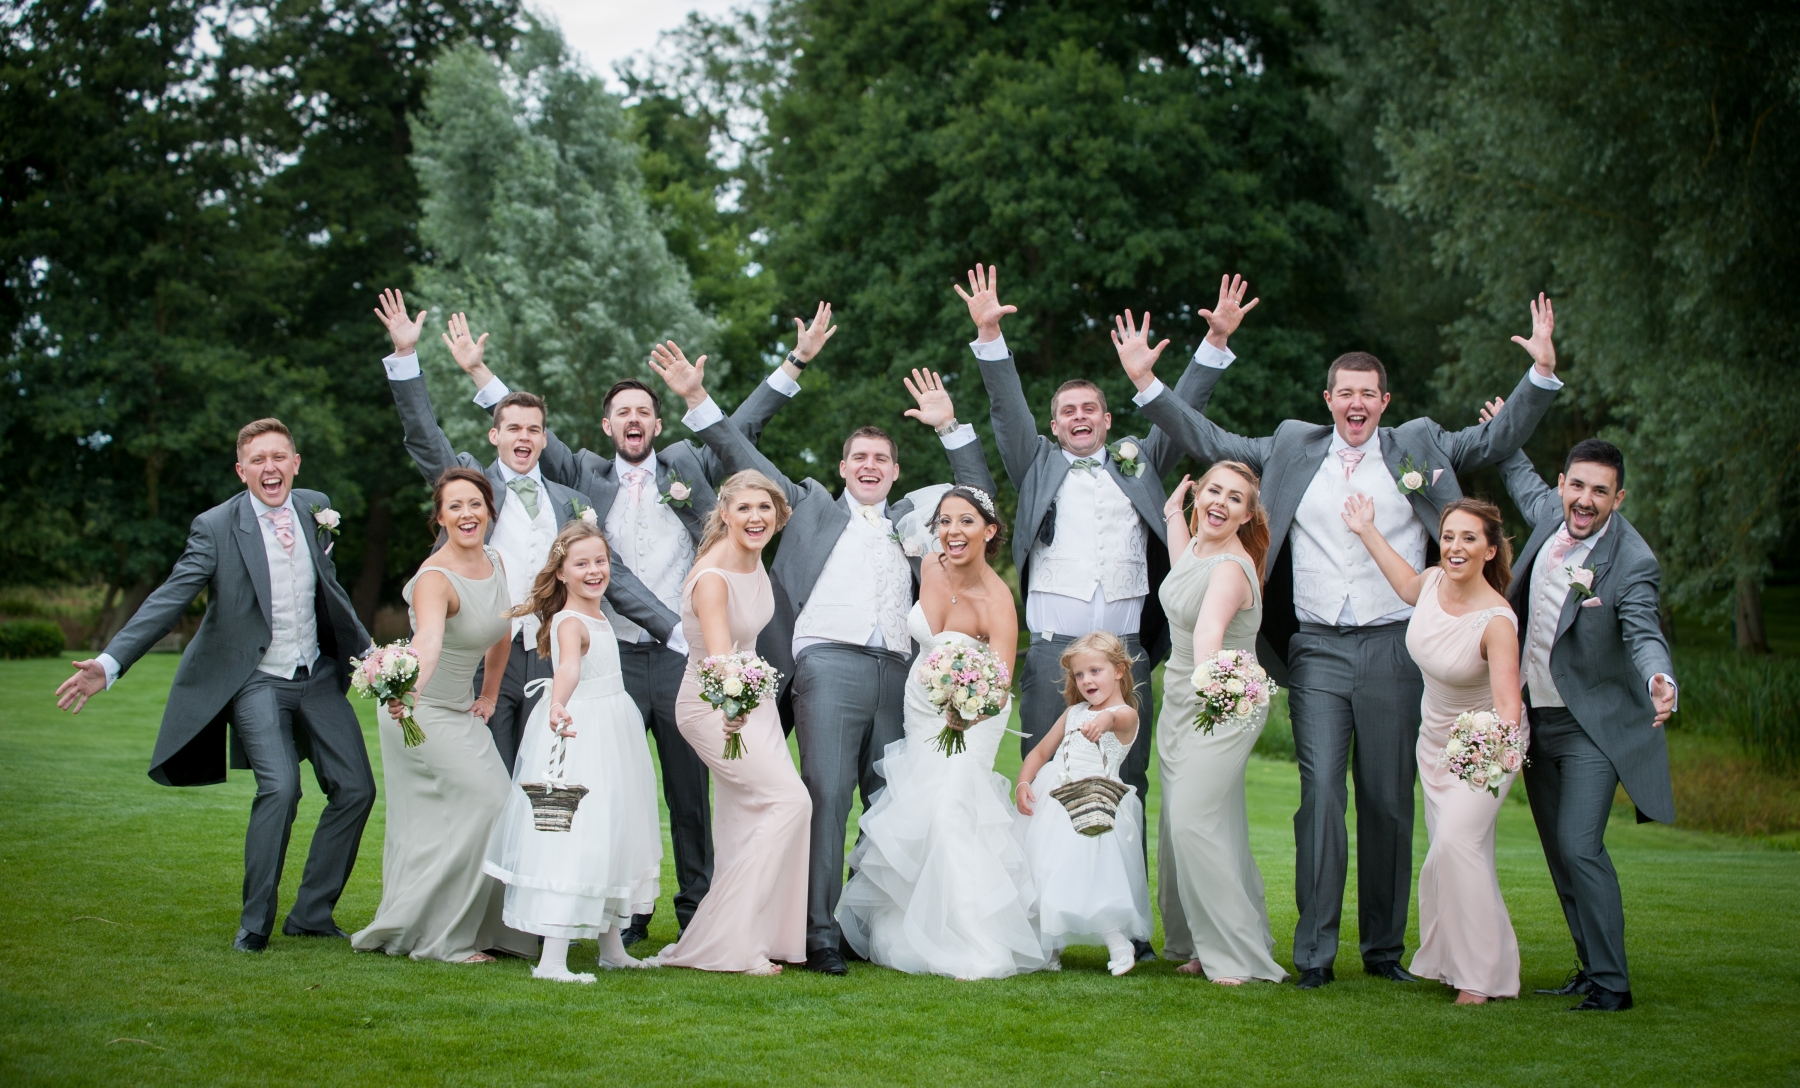 Becki and Matt August 2018 - Bride and groom party